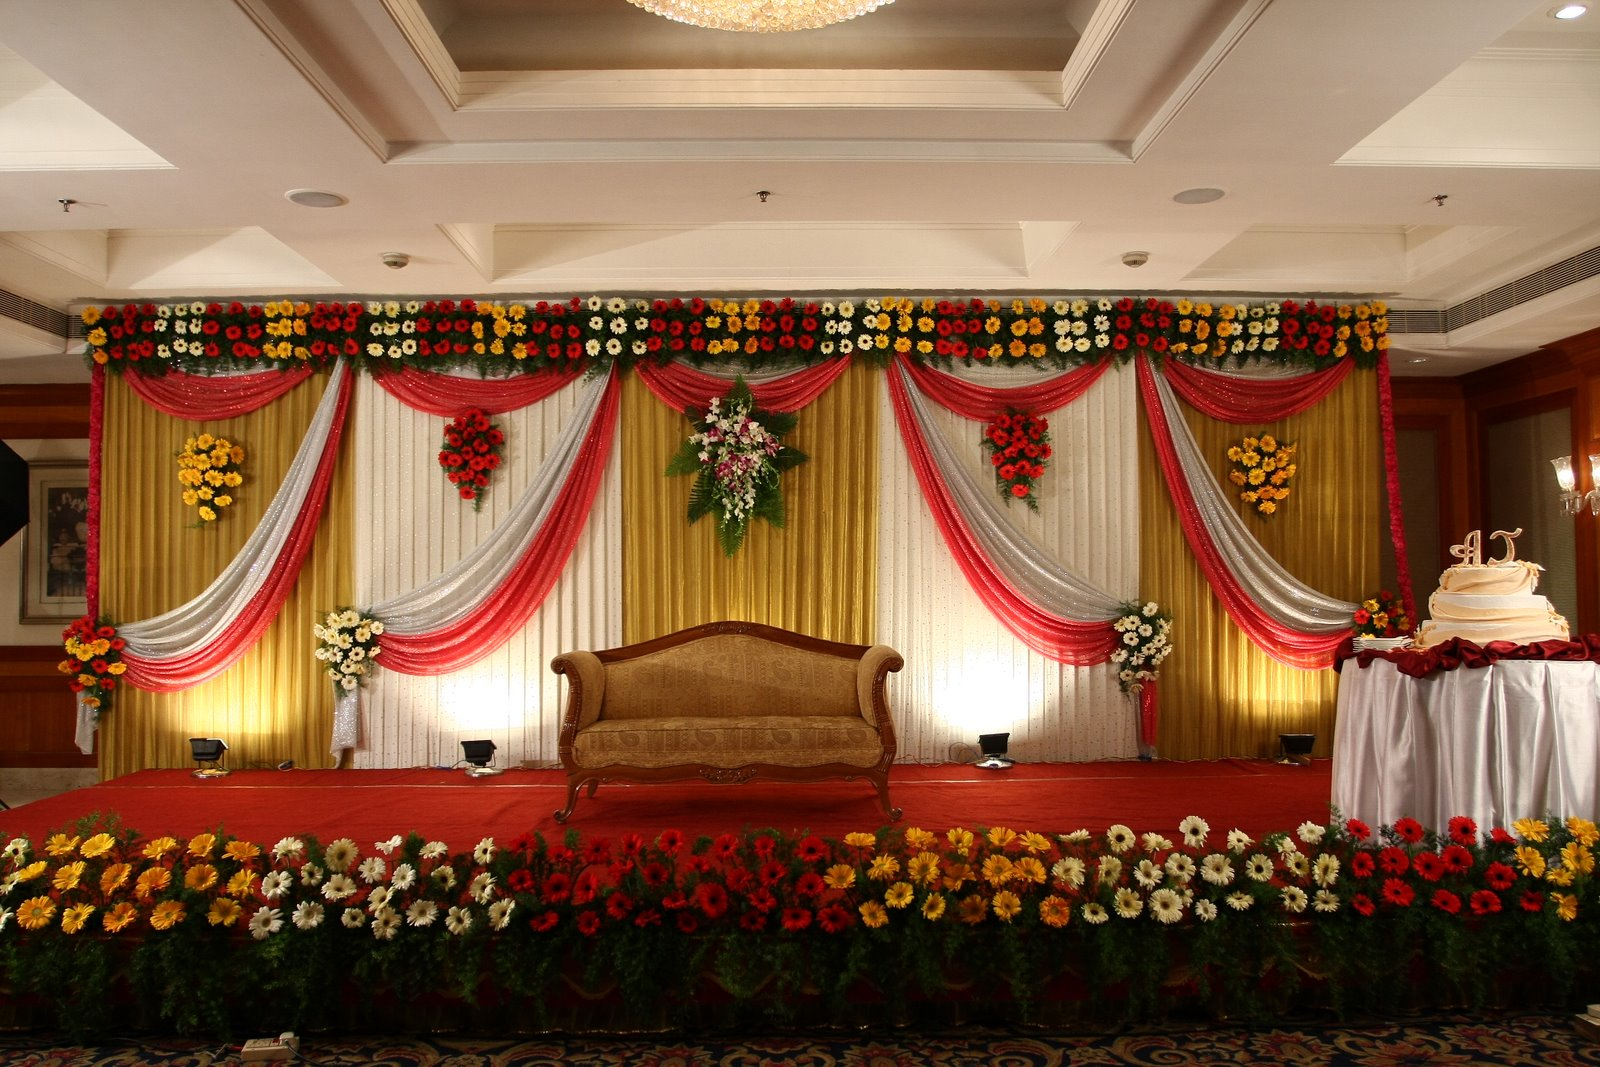 About marriage marriage decoration photos 2013 marriage for Home decorations for wedding